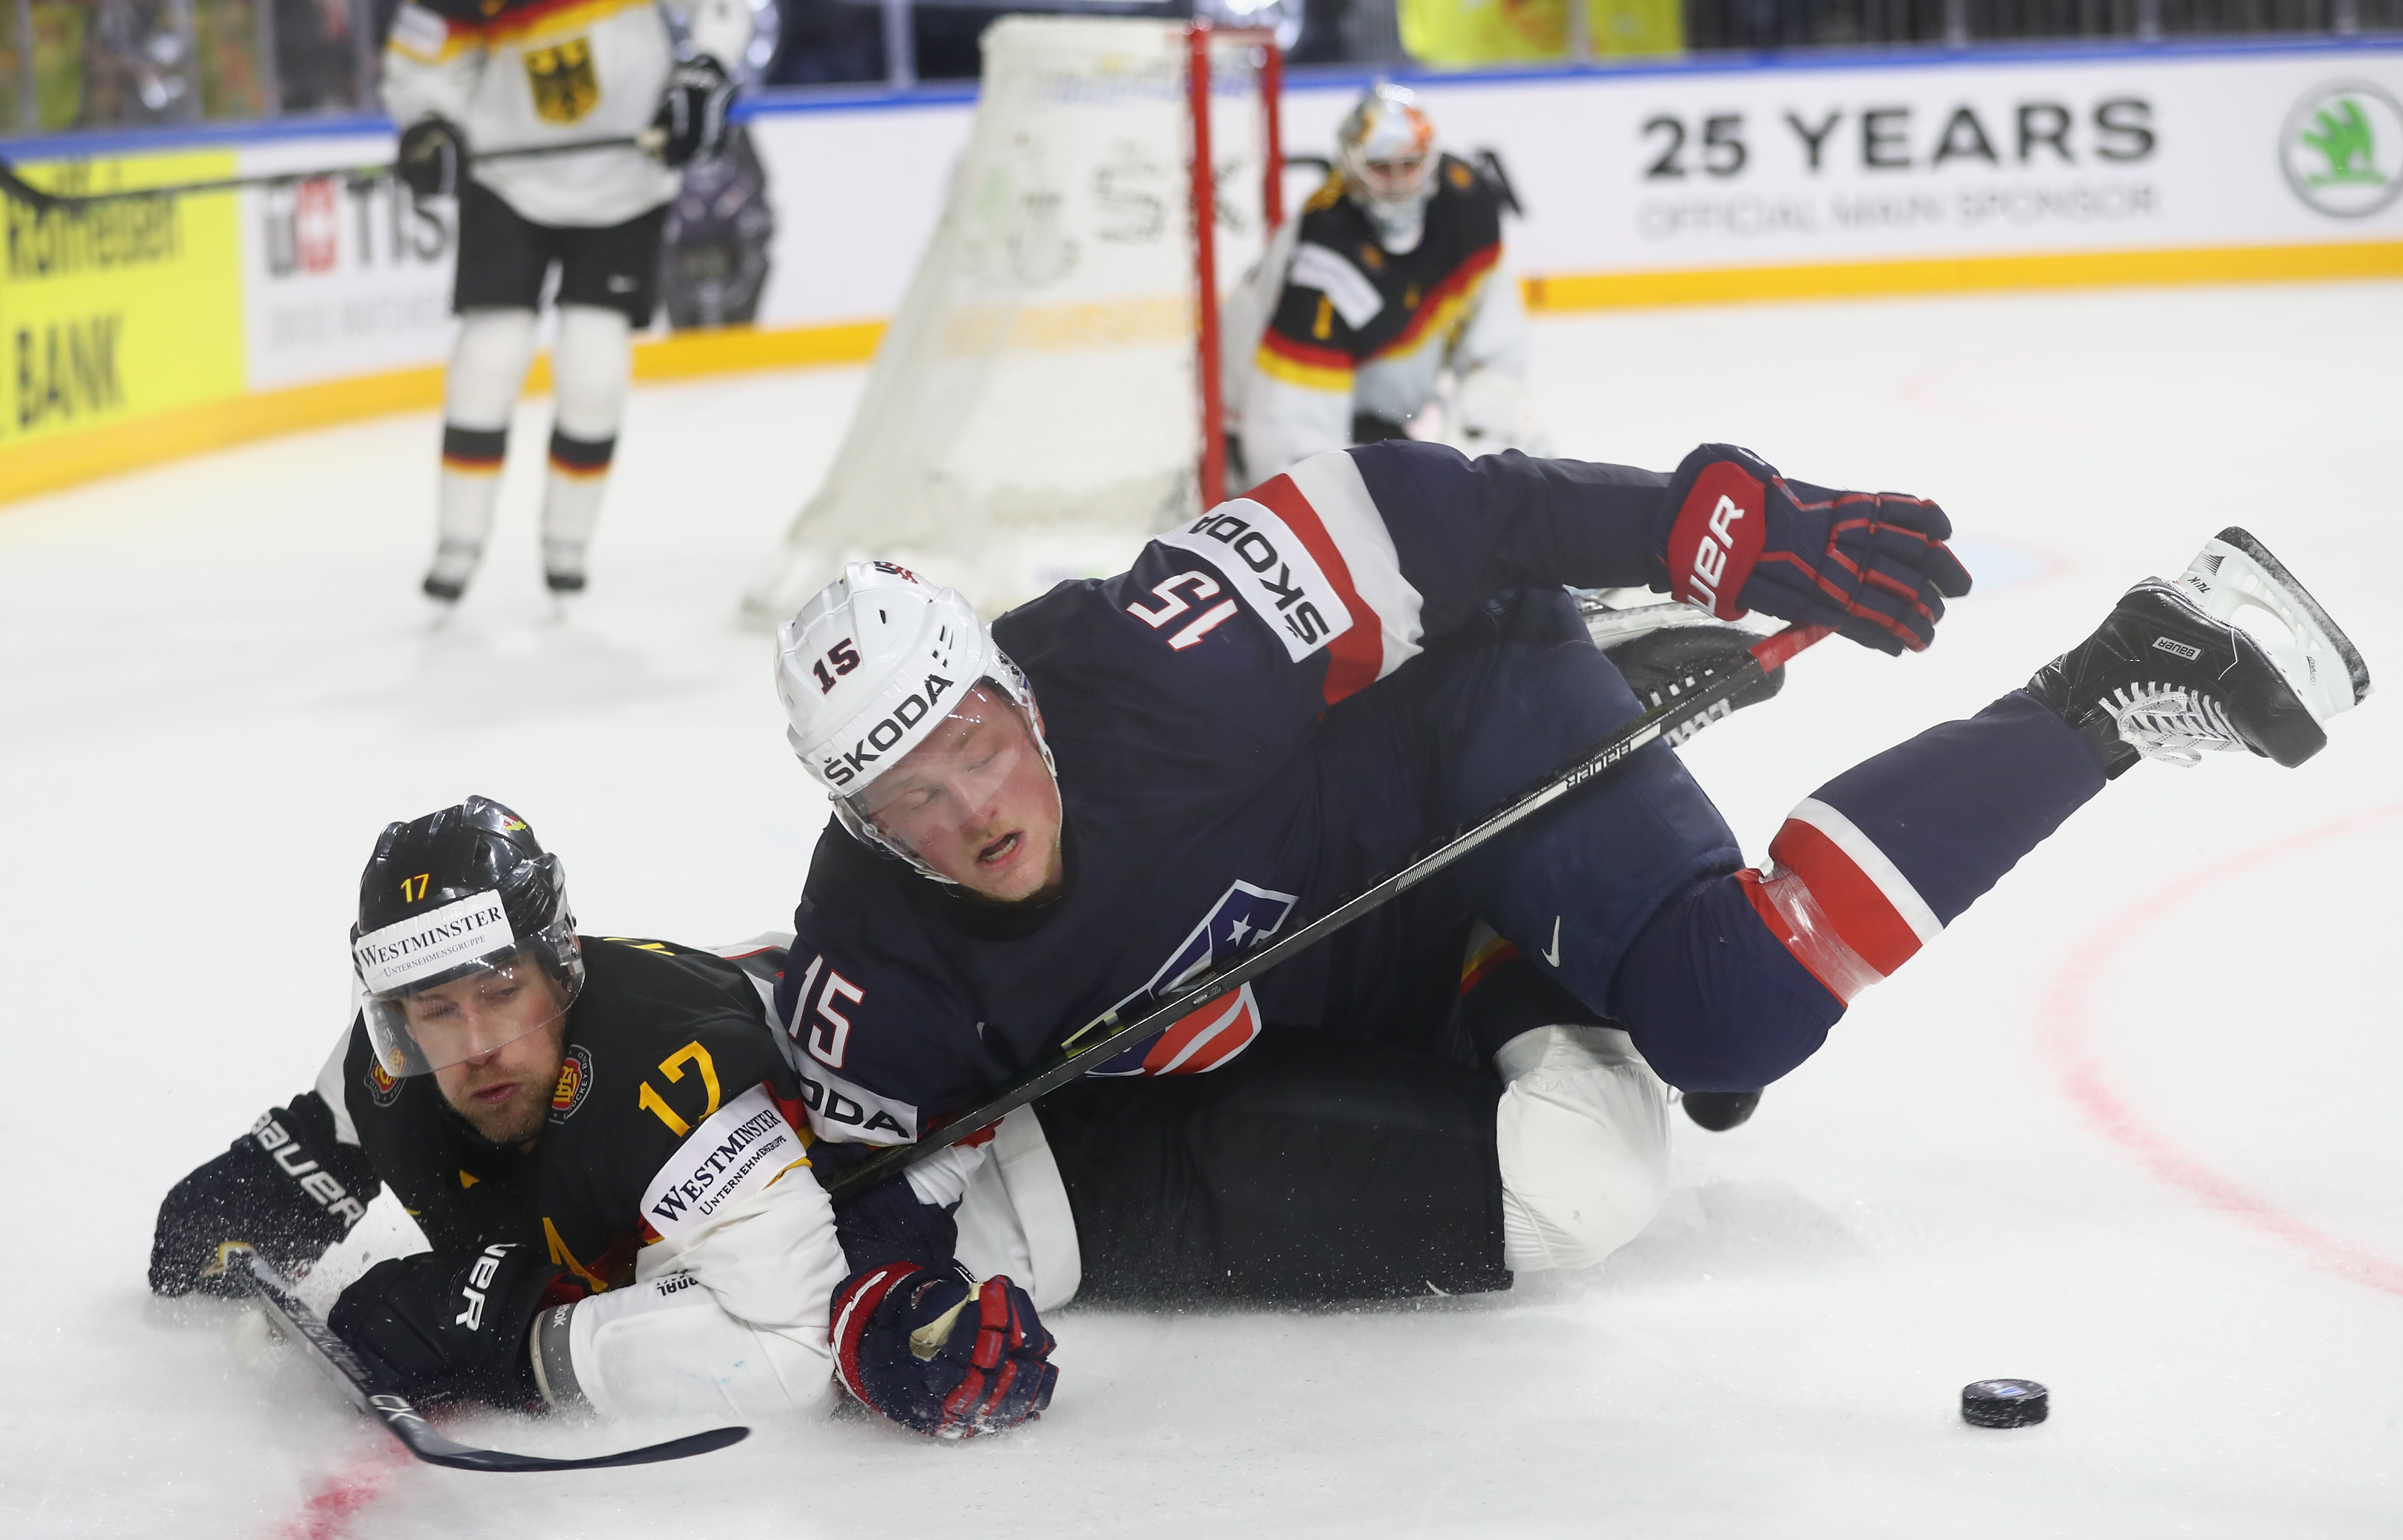 Jack Eichel and the United States fell to Marcus Kink and Germany despite a 43-27 shot edge. (Getty Images)